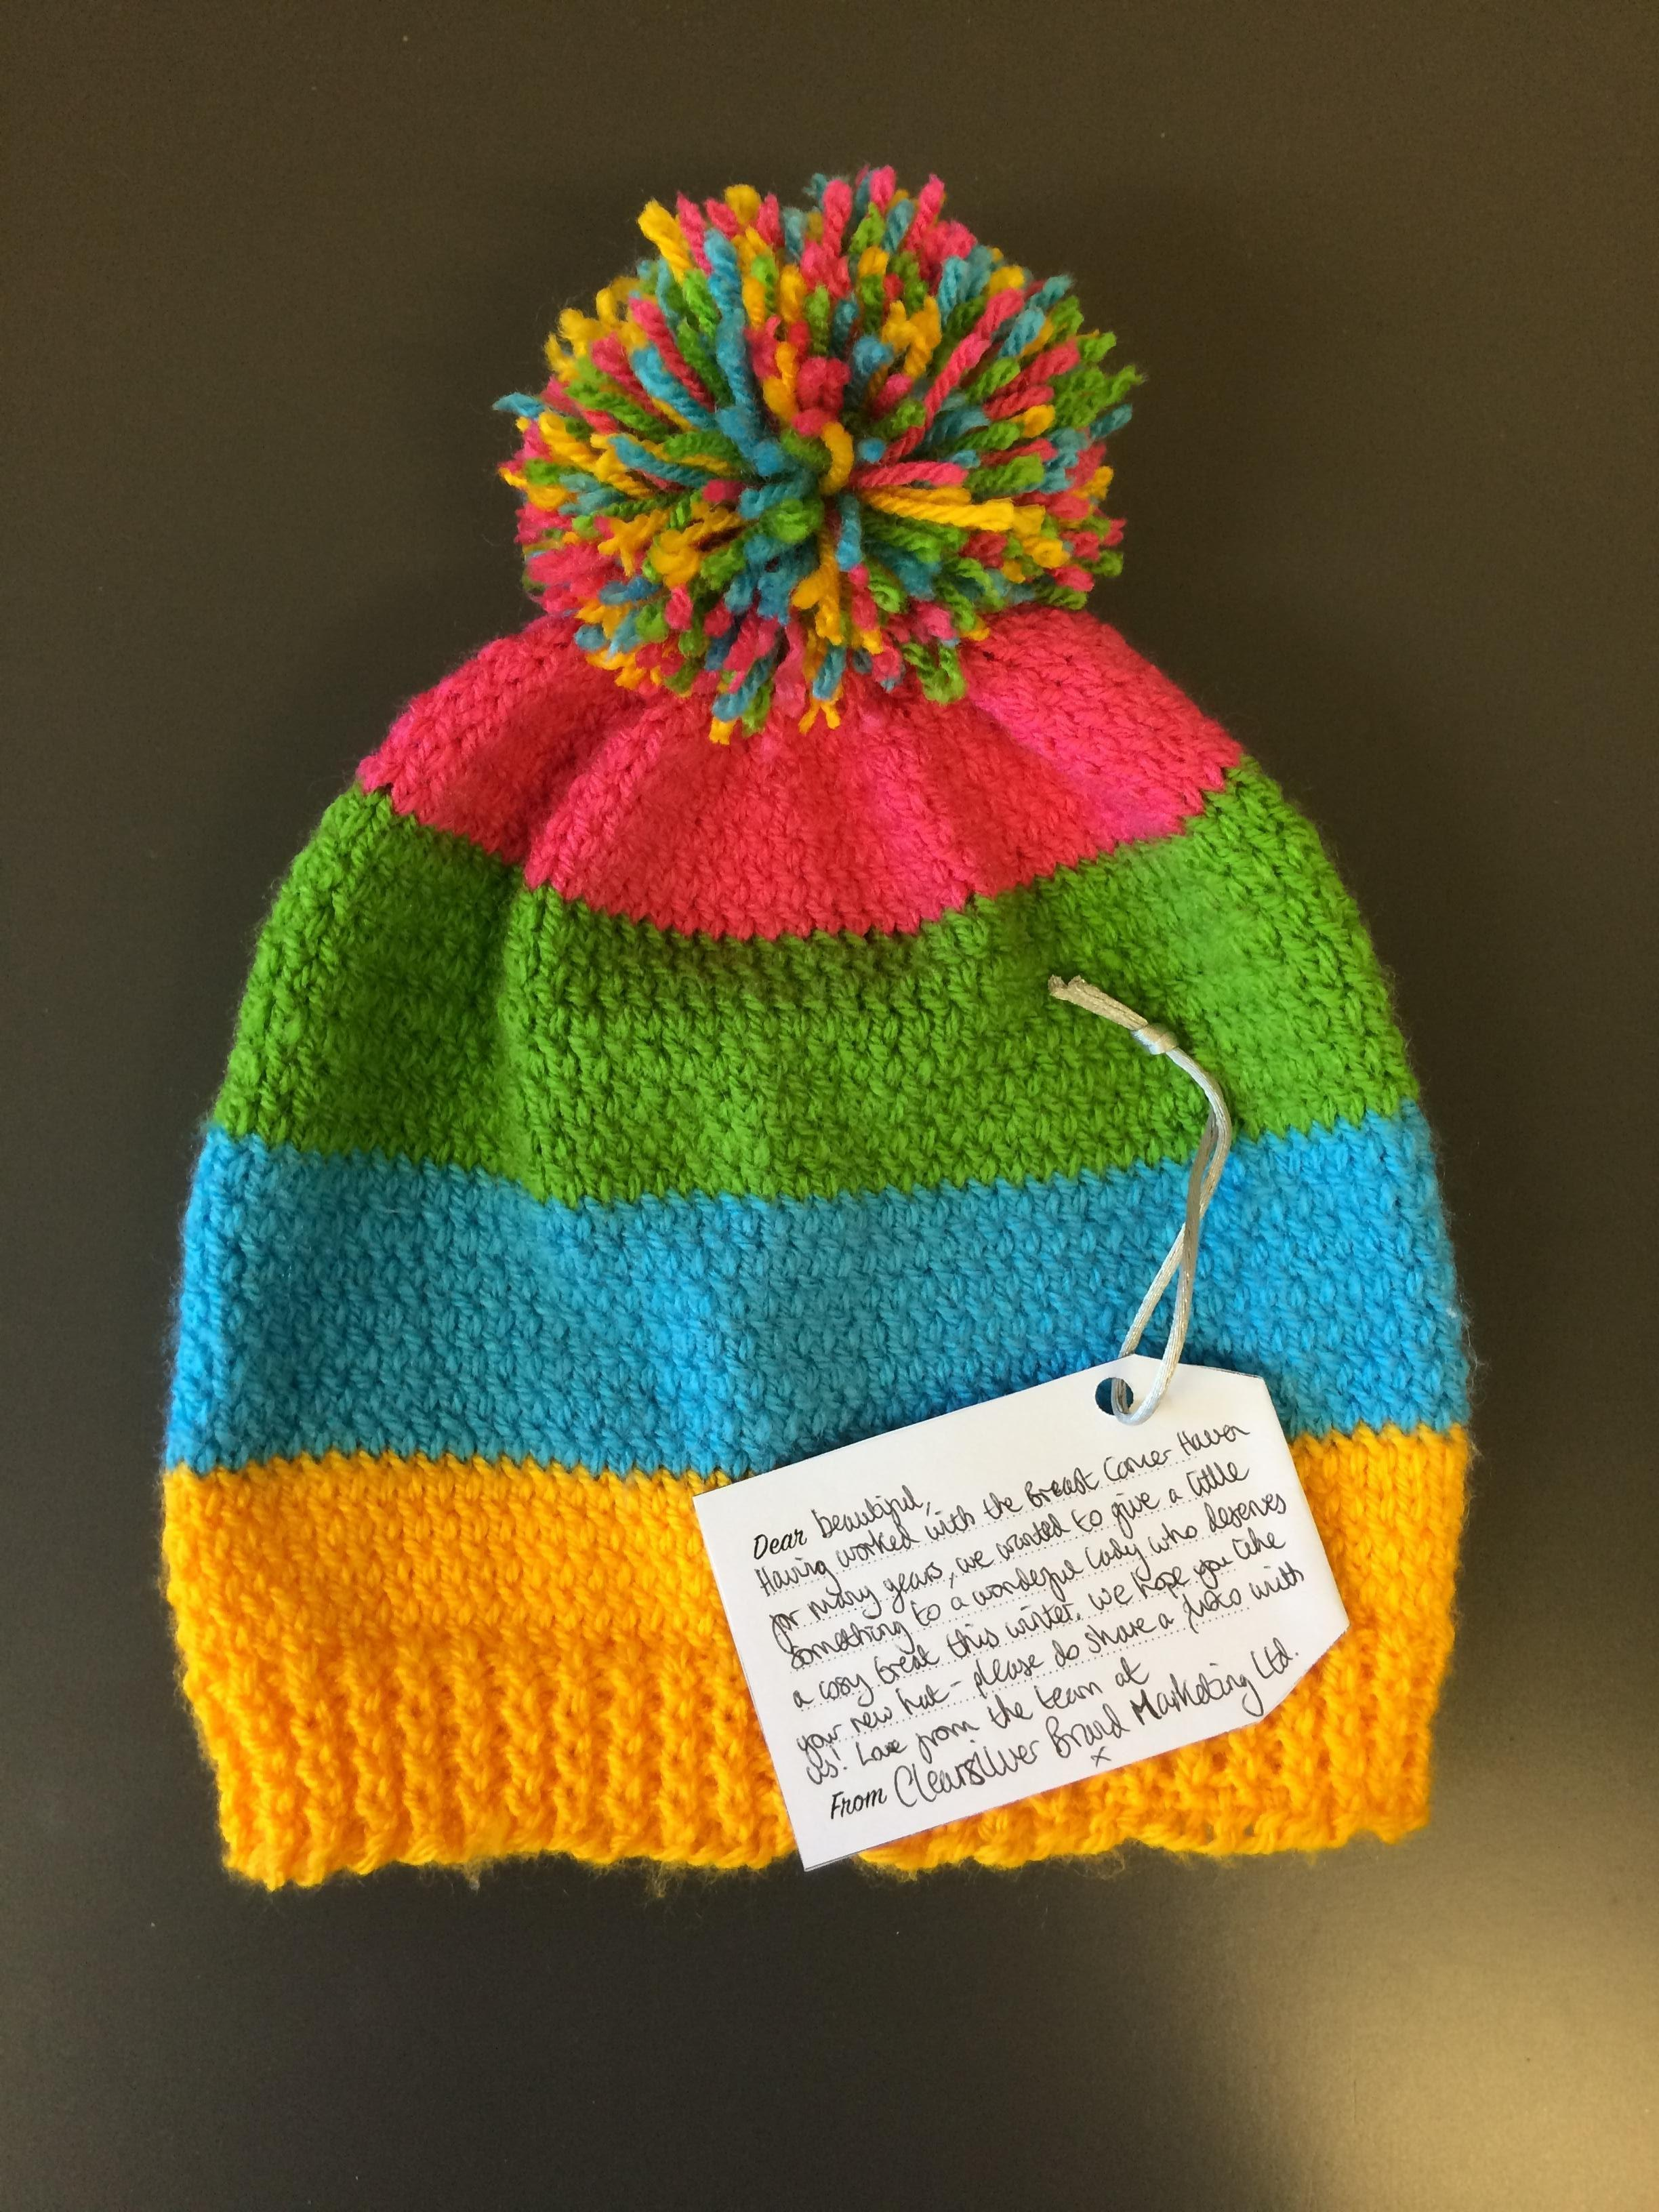 Big Tea Cosy - knitted bobble hat label